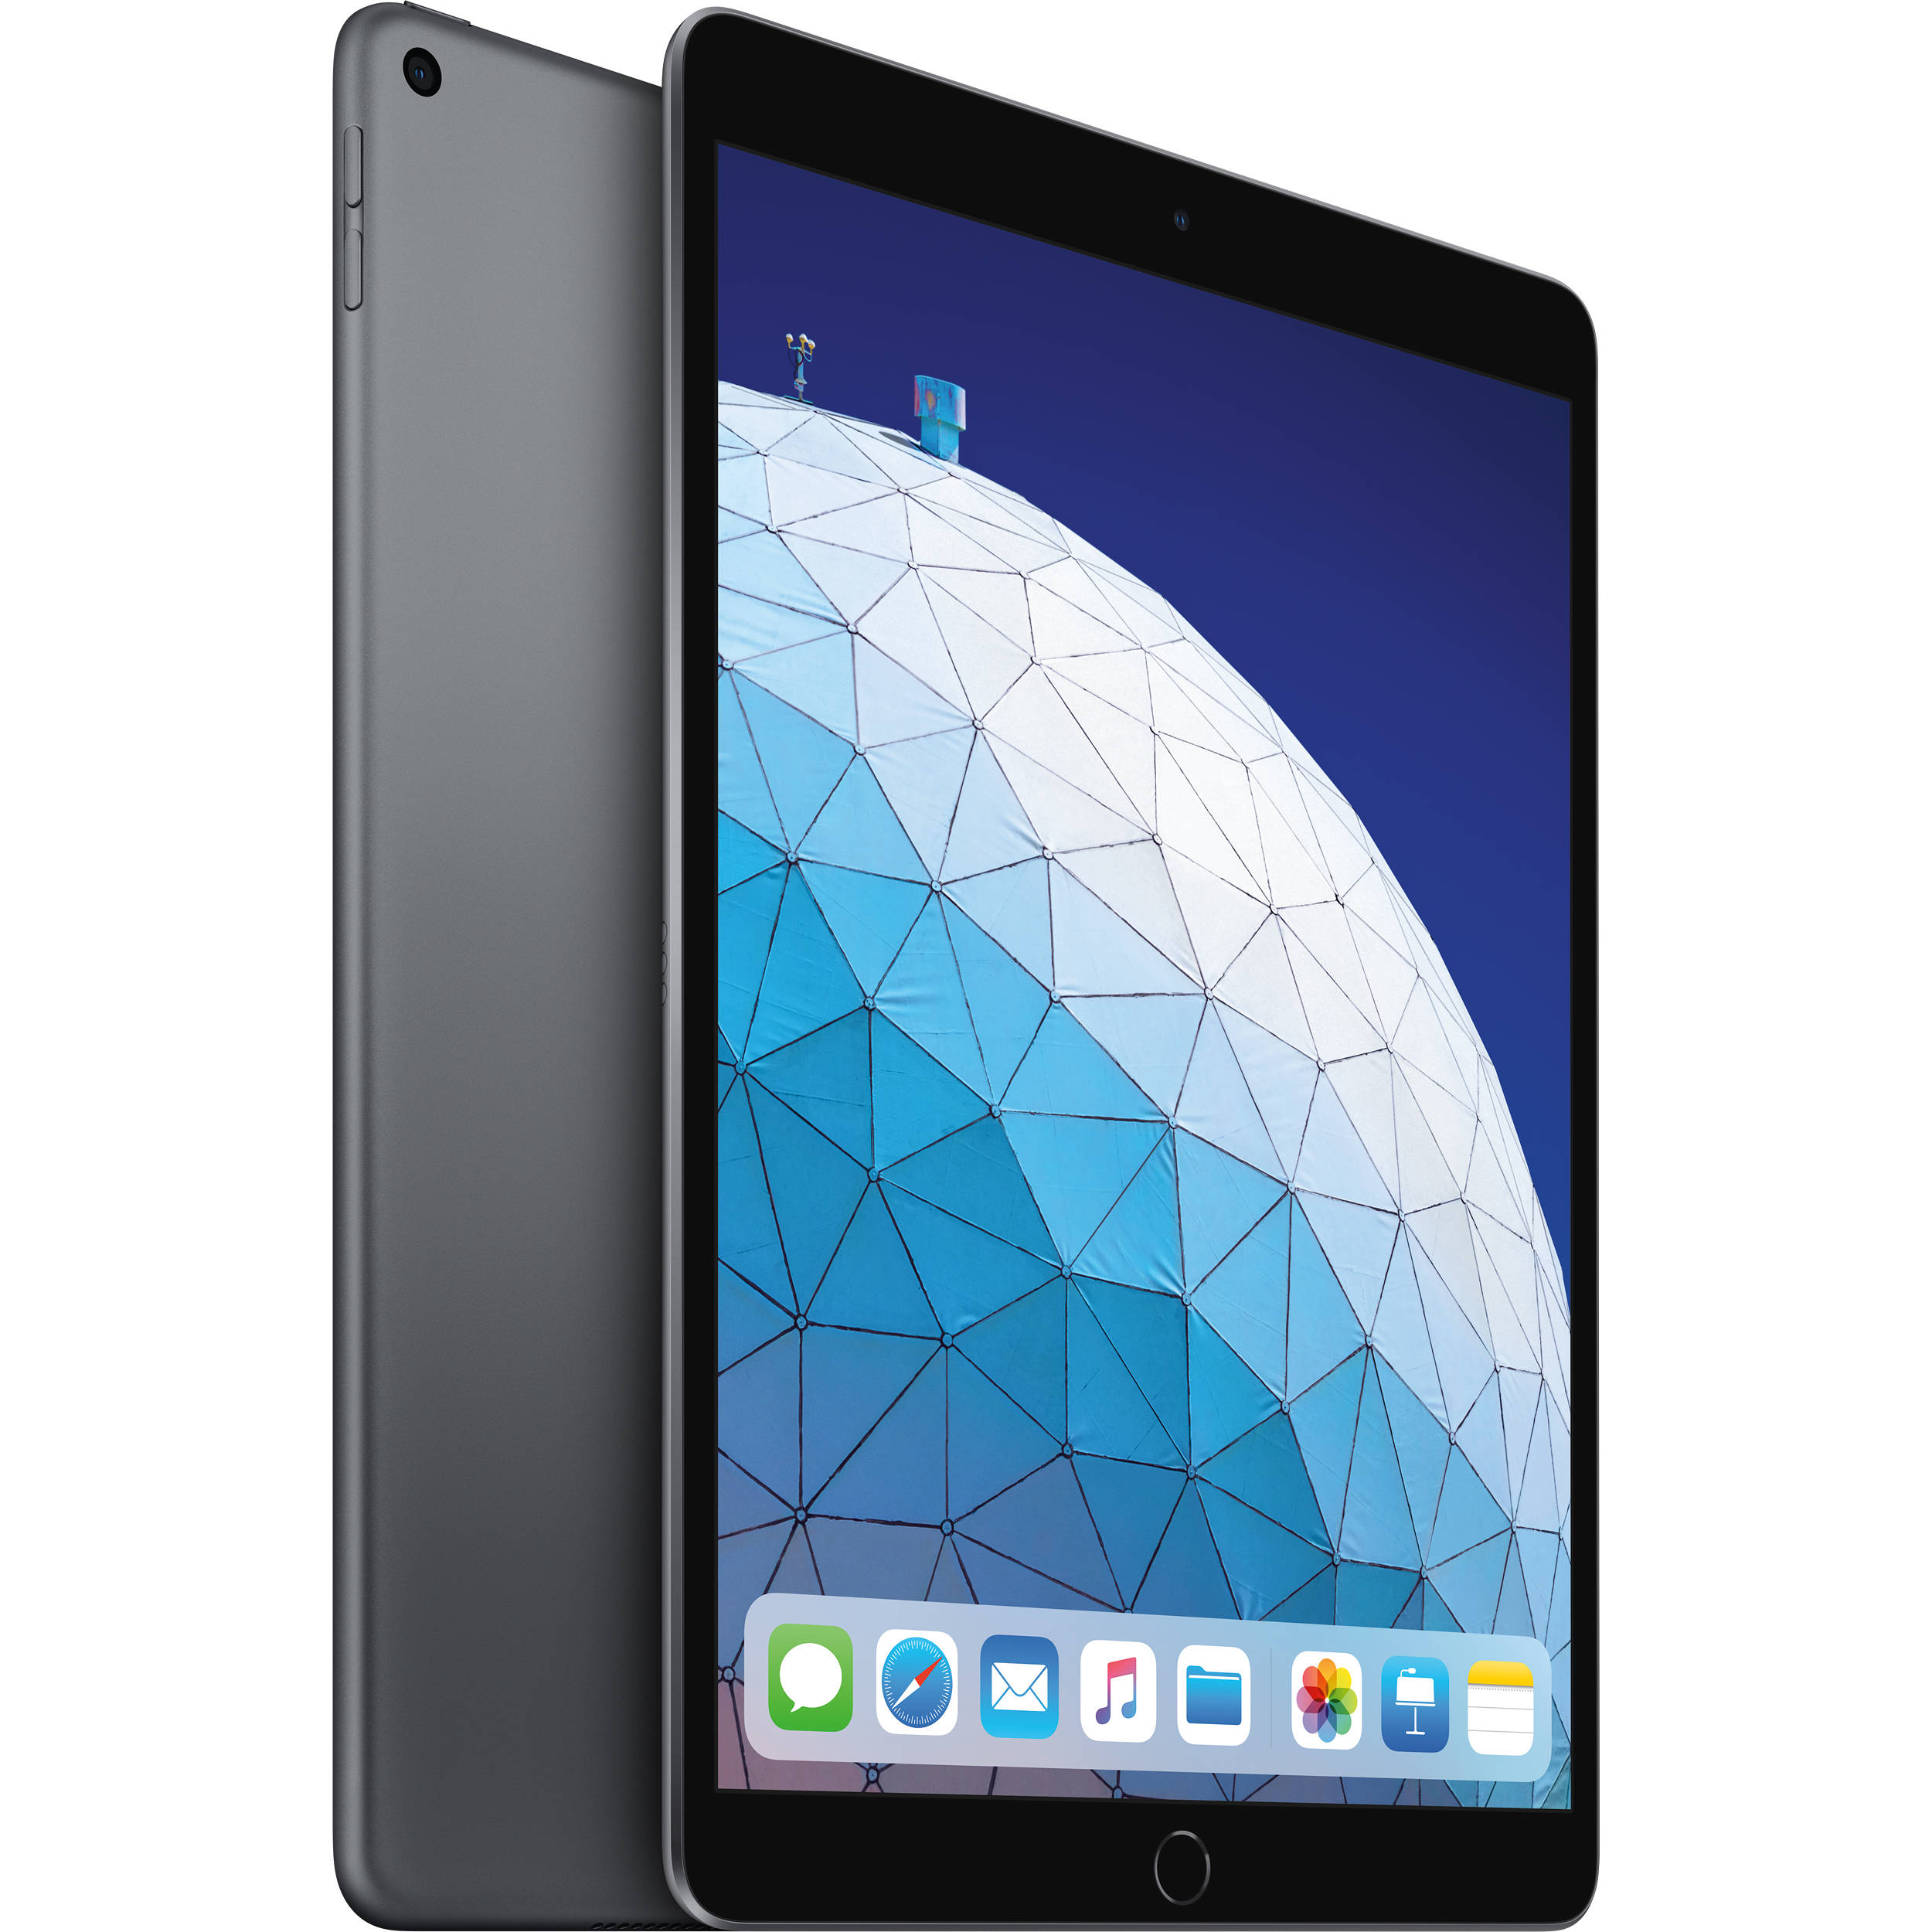 """Image of Apple iPad Air (2019) 10.5"""" MUUJ2 64GB WiFi - Space Gray (with 1 year official Apple Warranty)"""